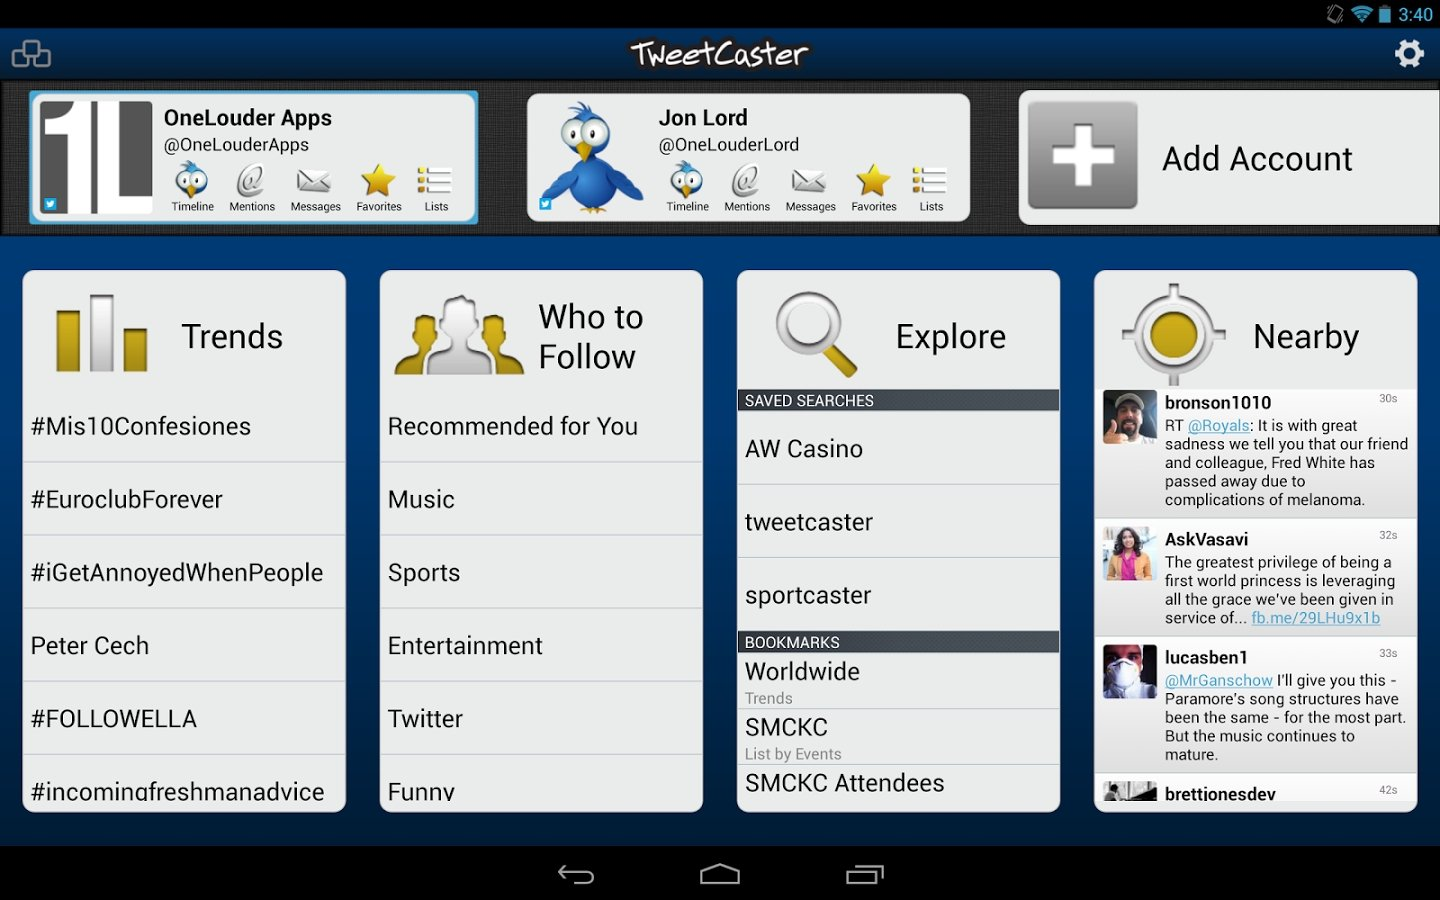 Opinions about TweetCaster